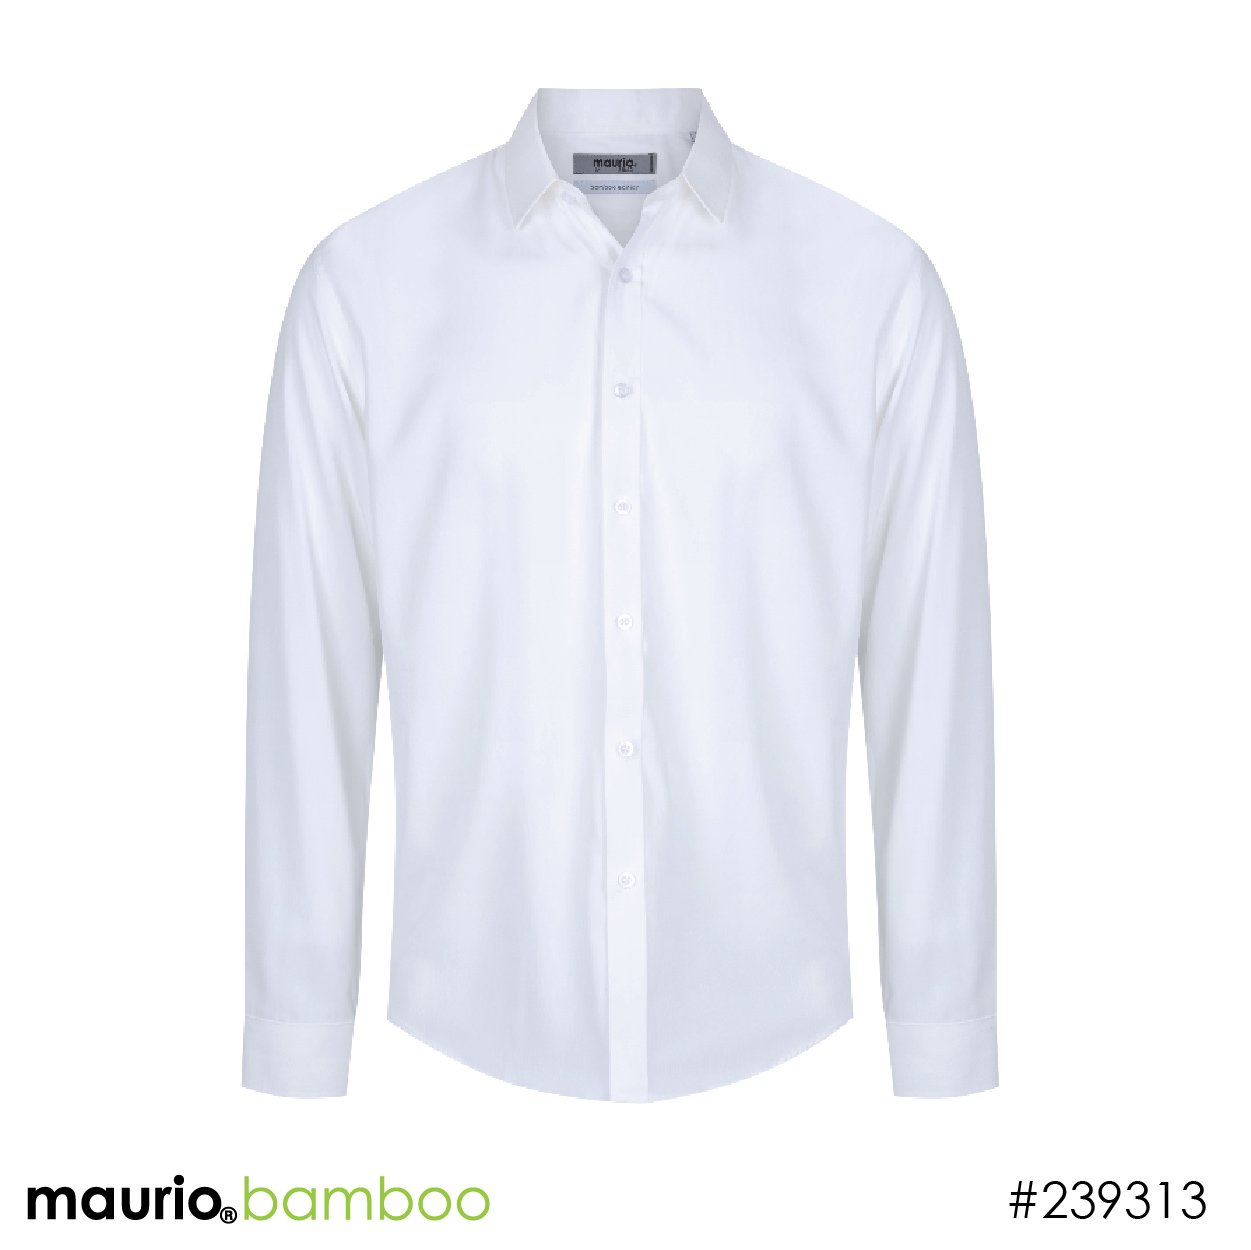 Dress shirt bamboo fabric - white